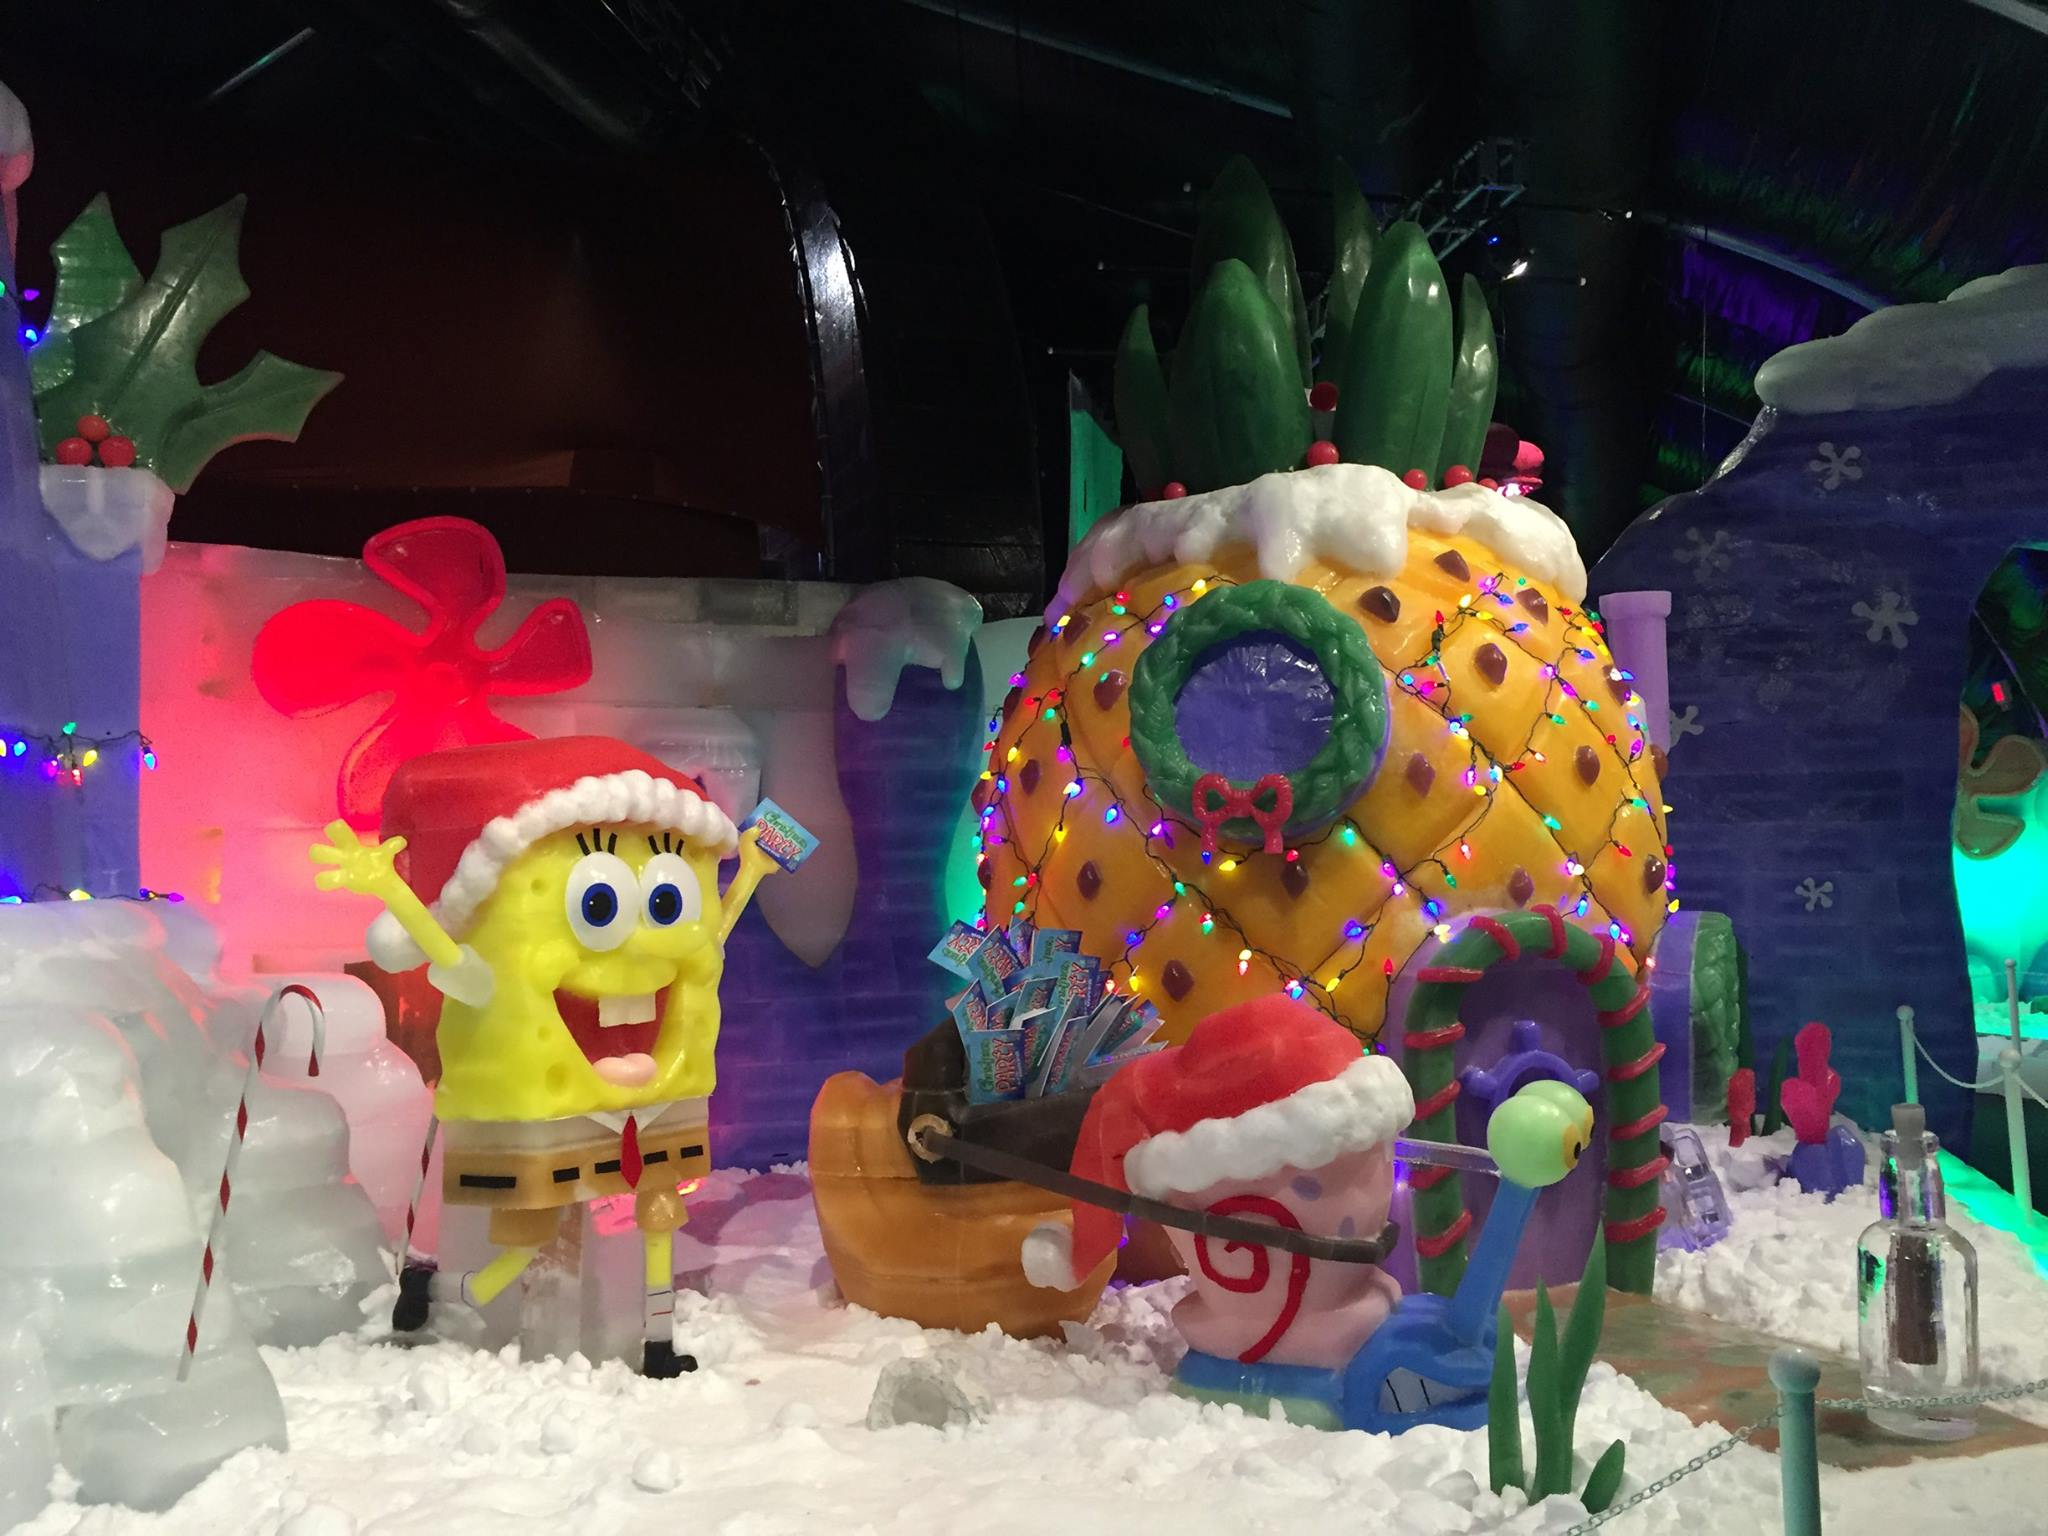 Bikini Bottom Gets An Icy Makeover In Ice Land With